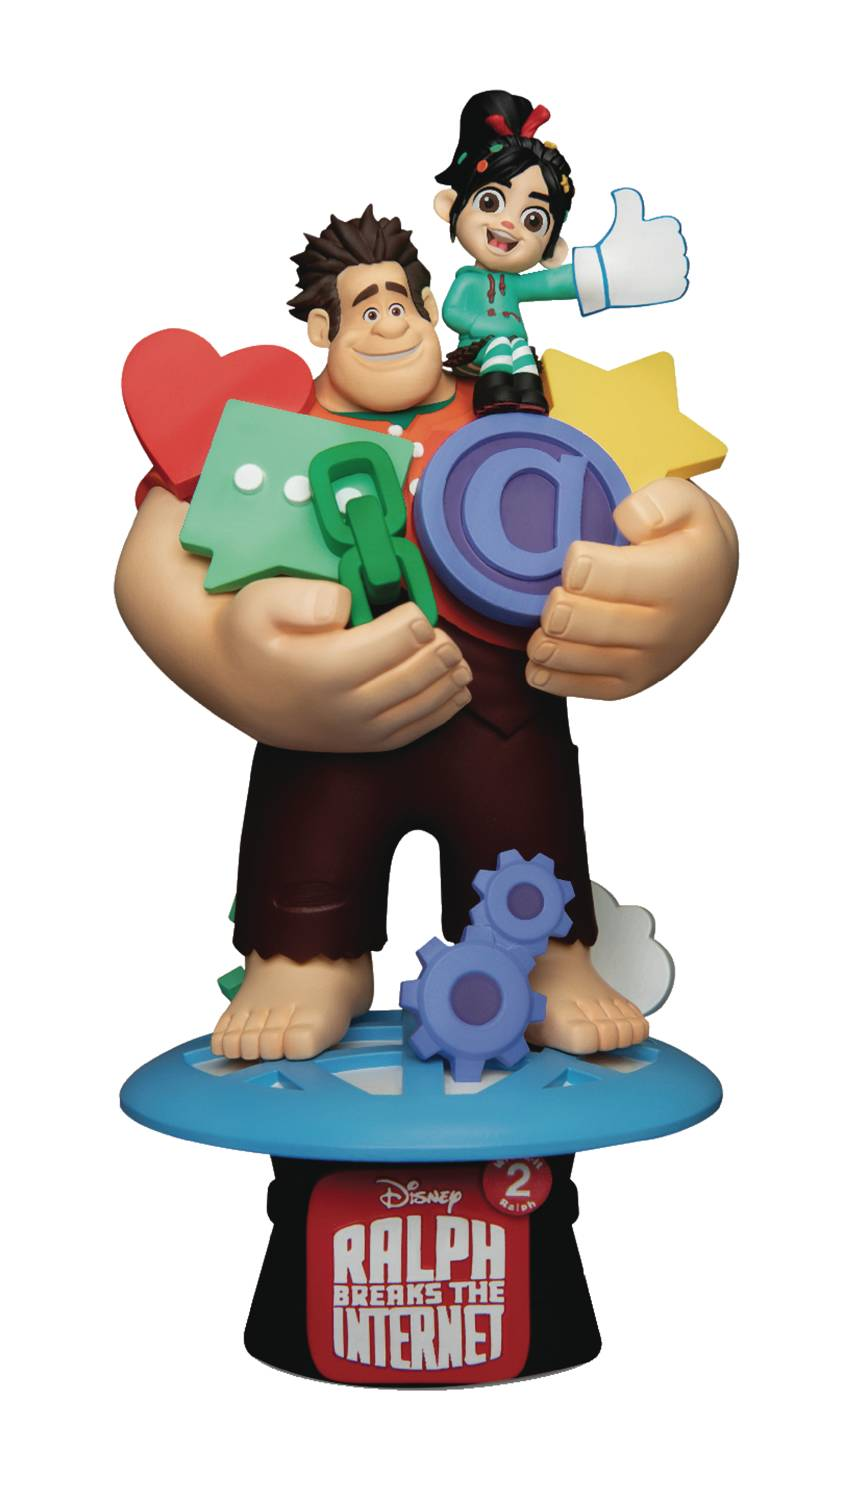 Wreck-It Ralph: Ralph and Vanellope Statue